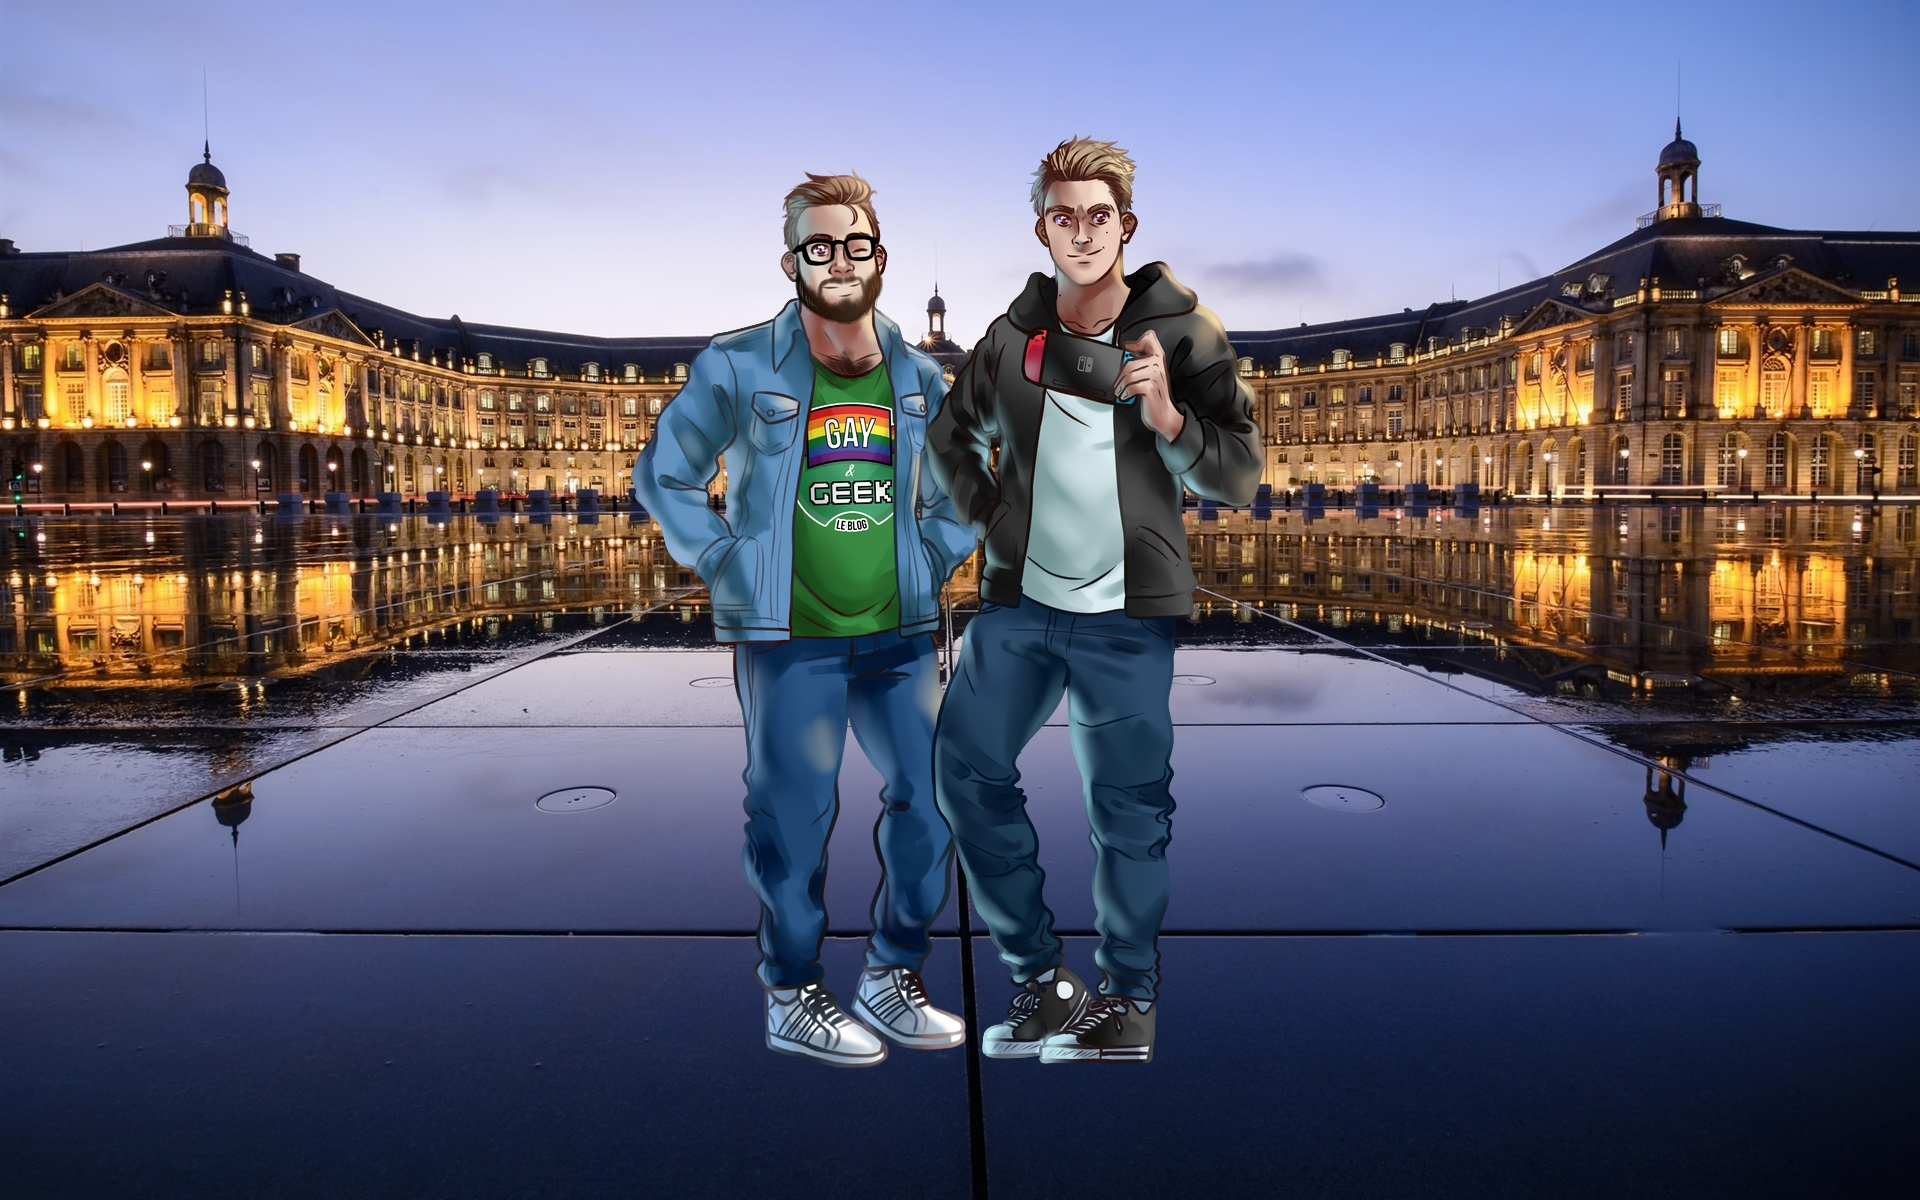 Gay and Geek – Bilan 2020 et projets 2021.